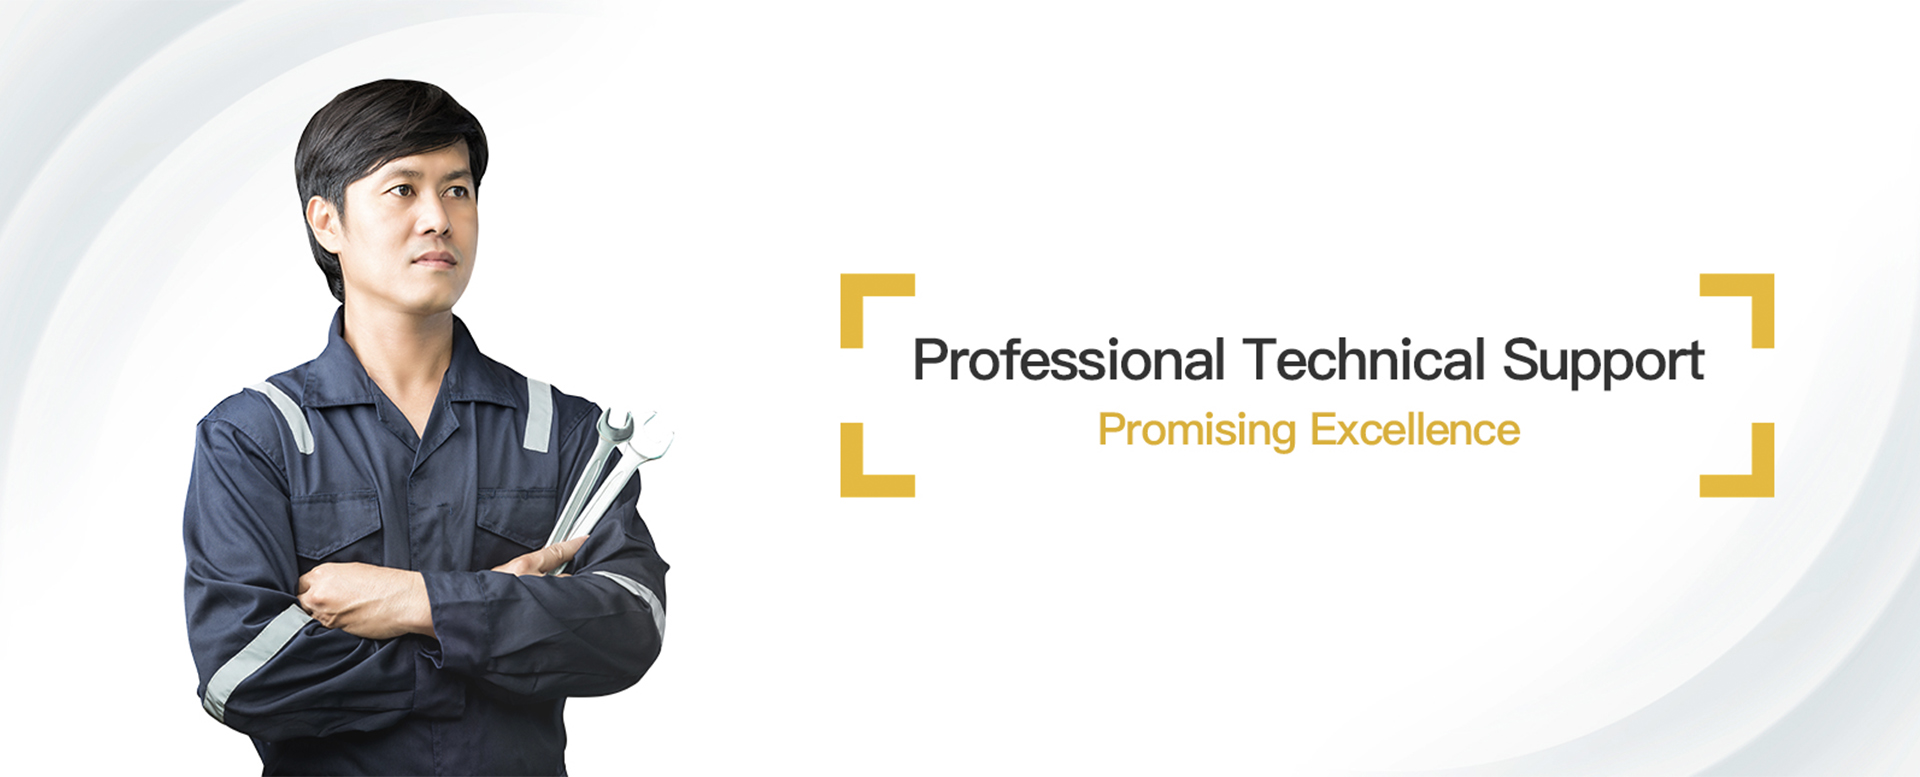 Professional Technical Support